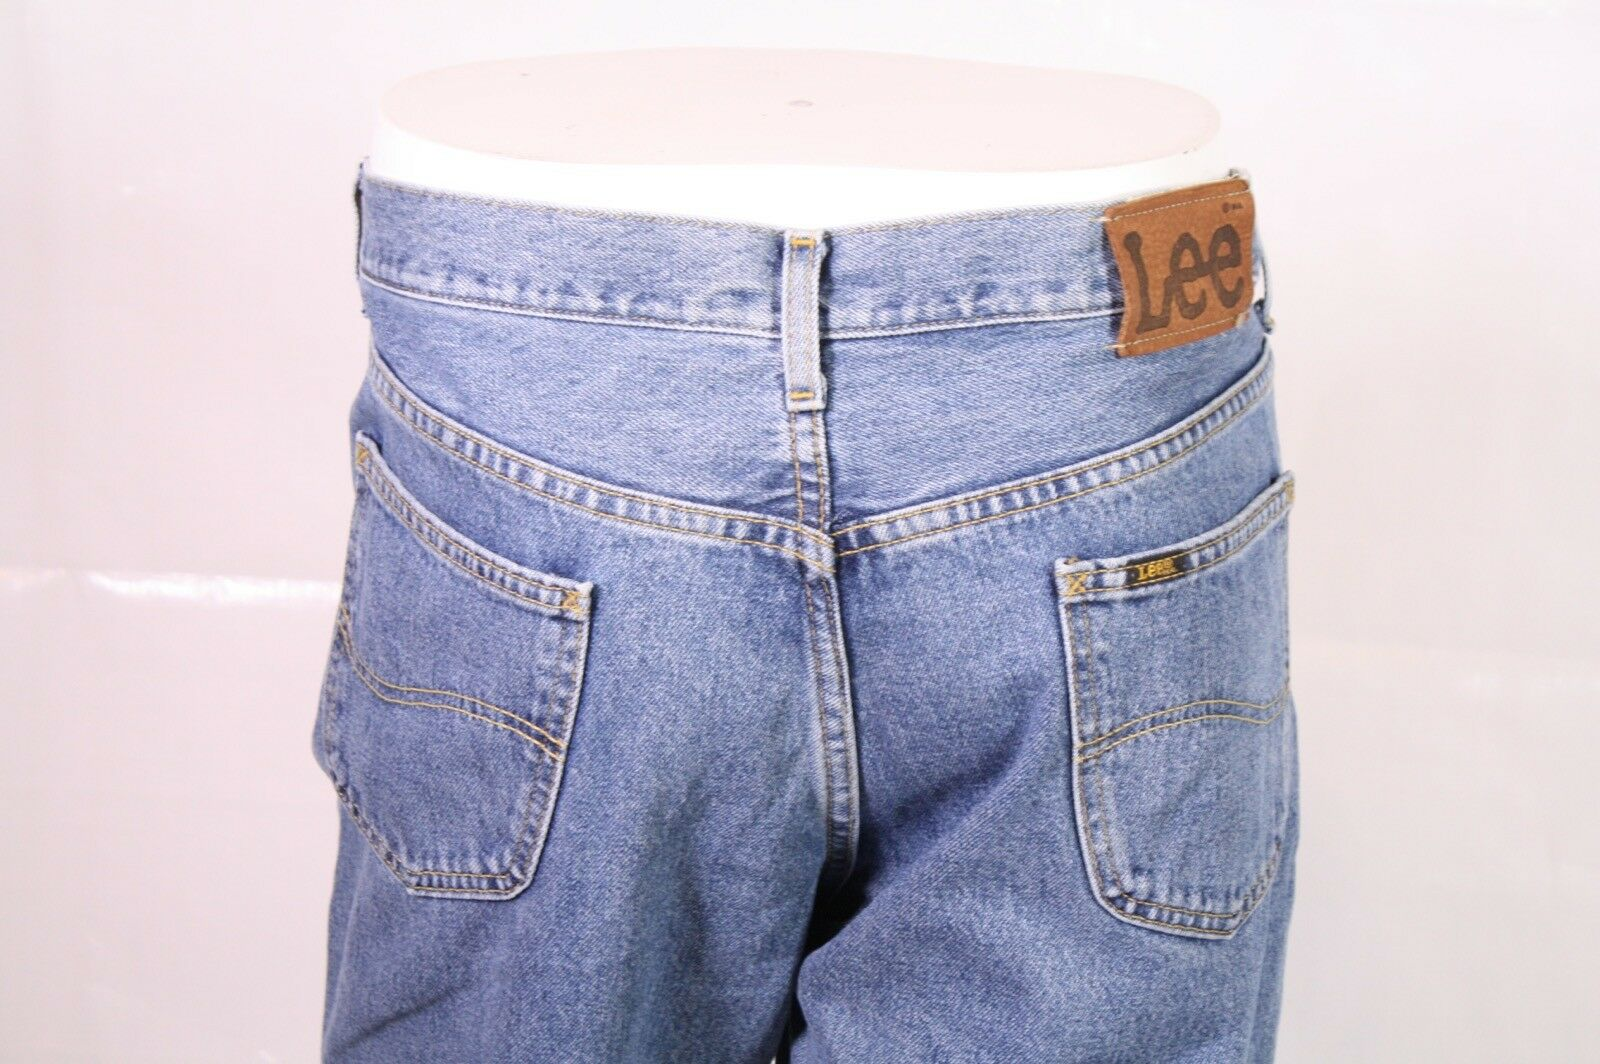 Bj1-13 Lee Boston Jeans w36 l30 Bleu Straight Leg Relaxed Fly Zip Fly Relaxed used-look 53f393